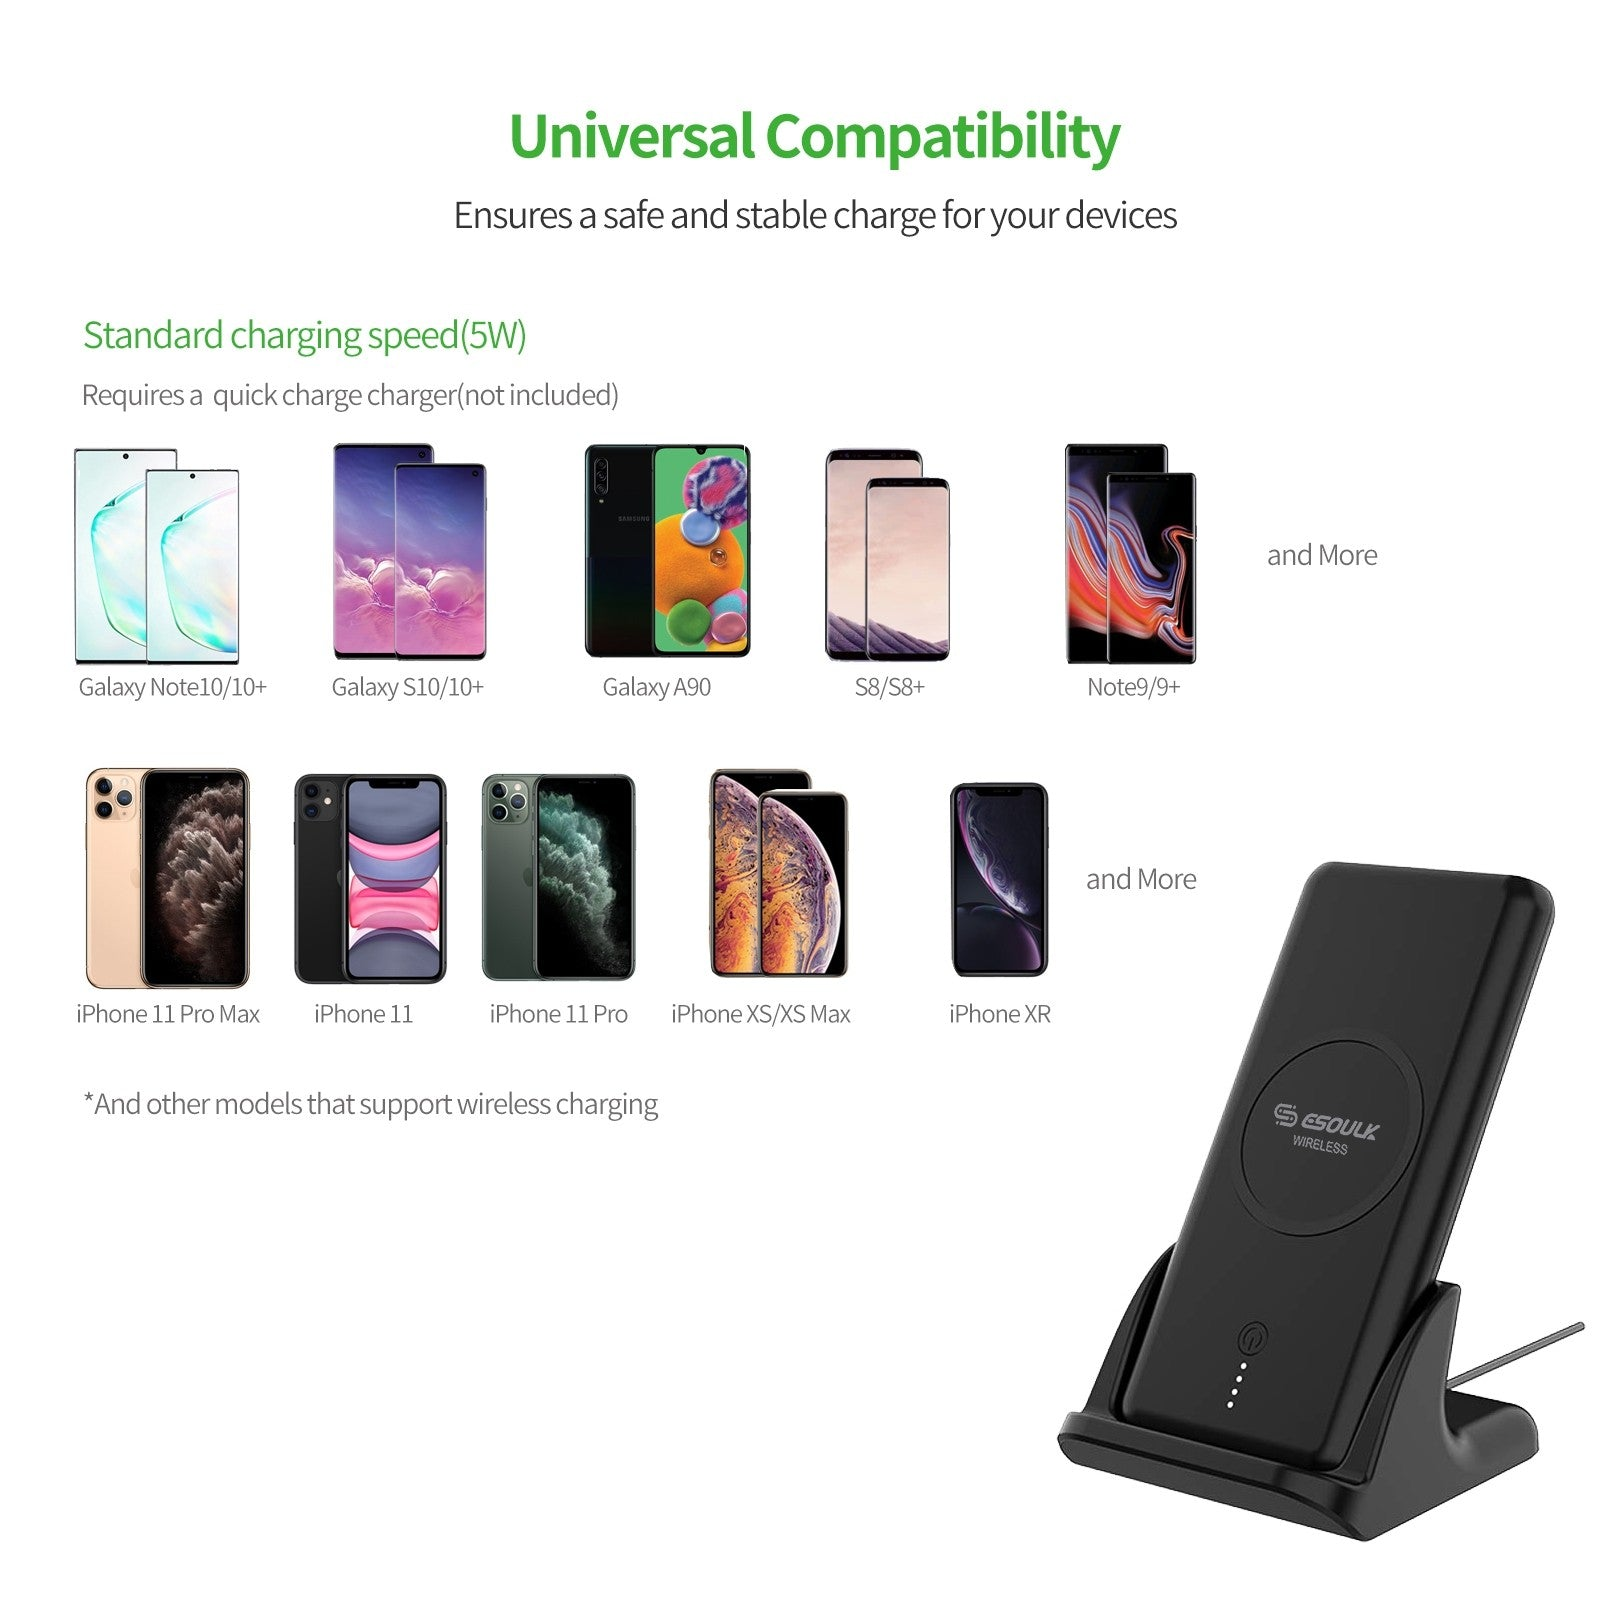 Esoulk Vertical Wireless Charger+Power Bank 10000mAh With Charging Dock And 4ft Cable Black EP05PBK